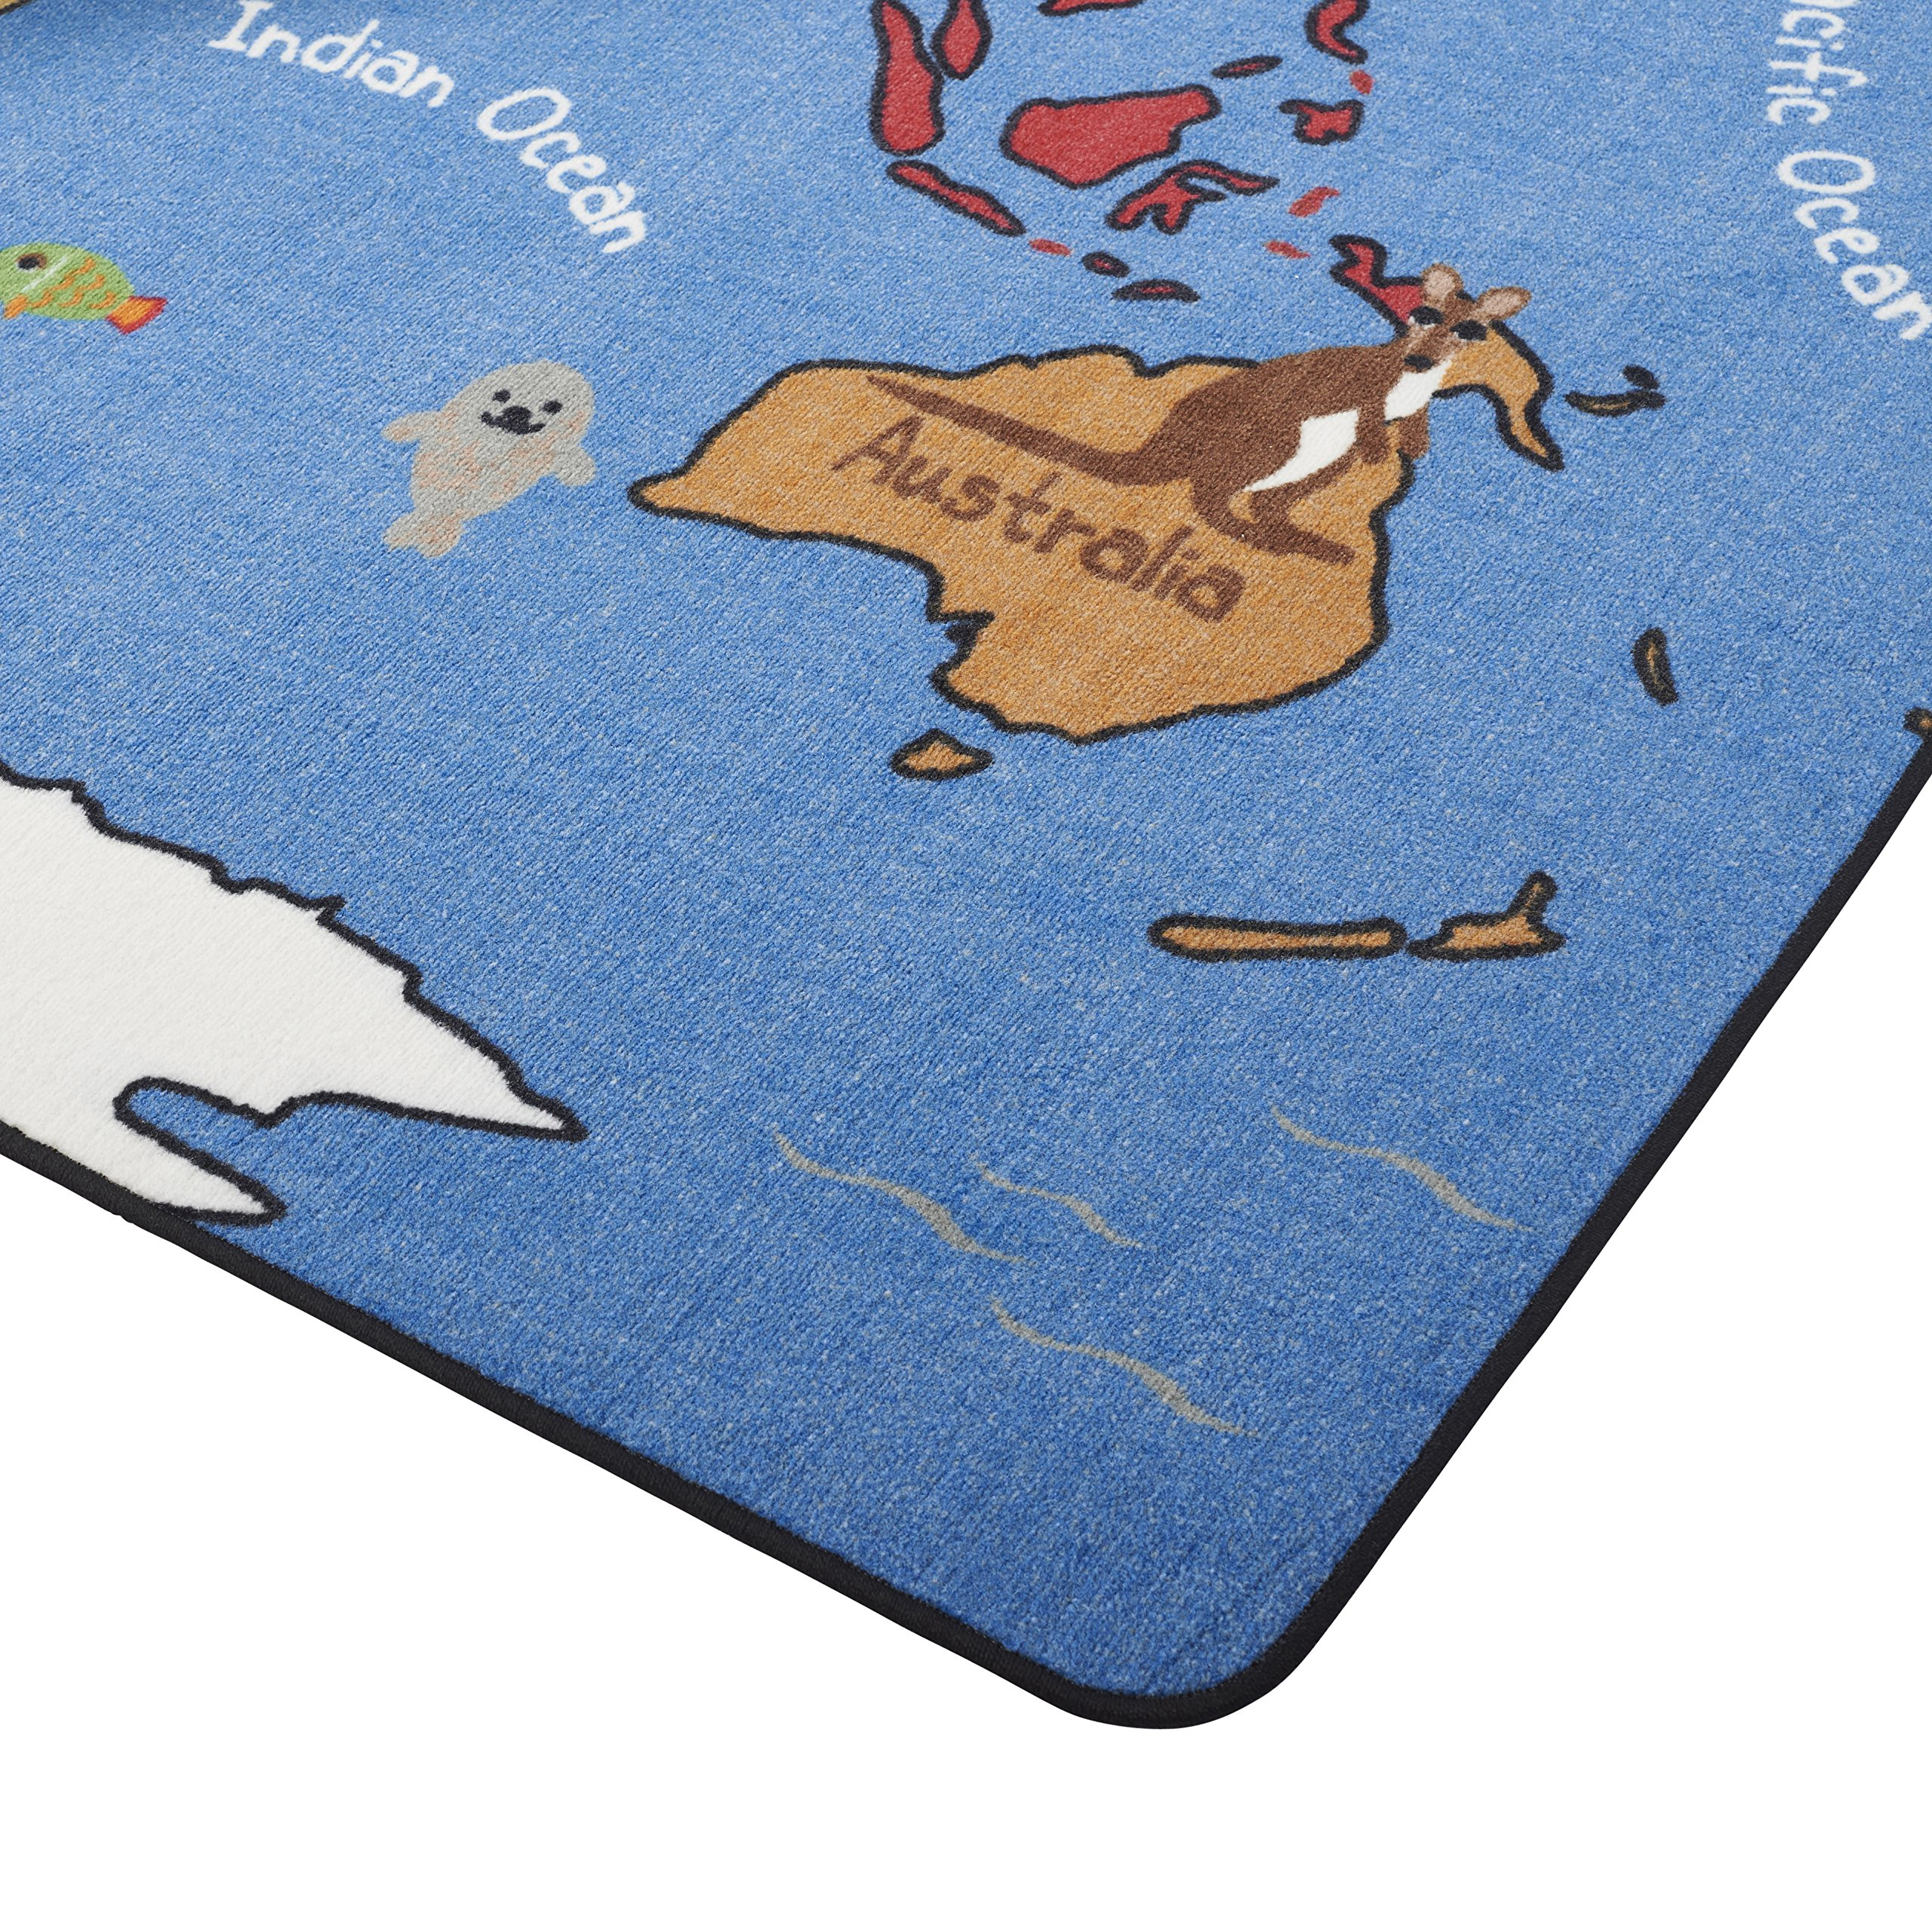 ECR4Kids Animals of the World Educational Activity Rug for Children, School Classroom Learning Carpet, Rectangle, 6 x 9-Feet by ECR4Kids (Image #4)